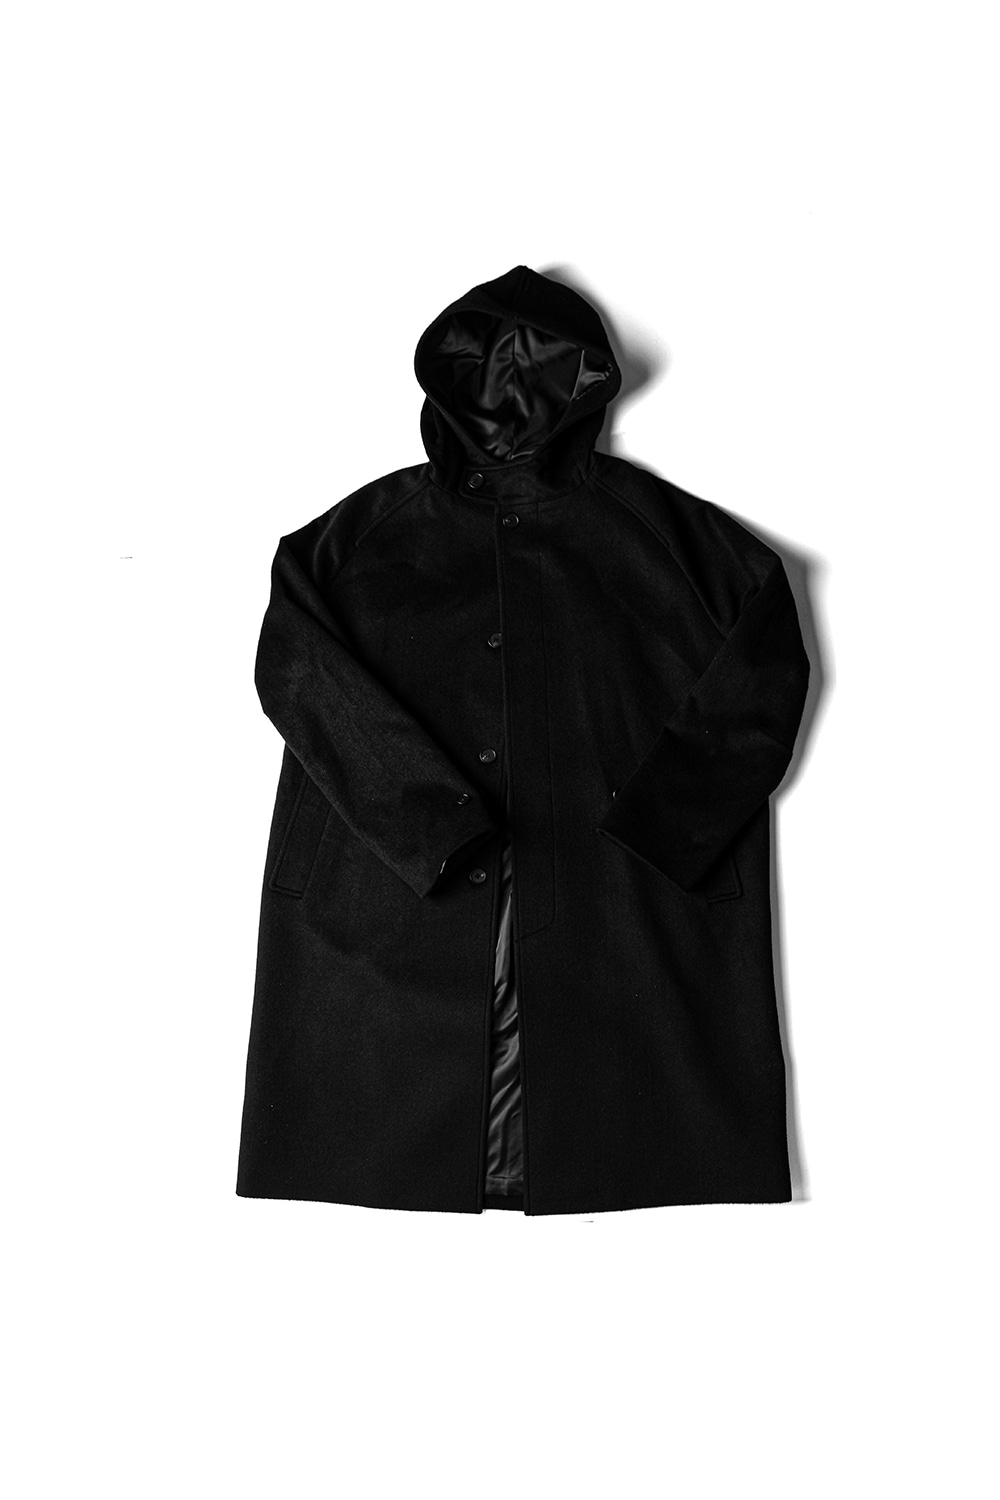 [Ourselves] WOOLCASH HOODED COAT (BK)